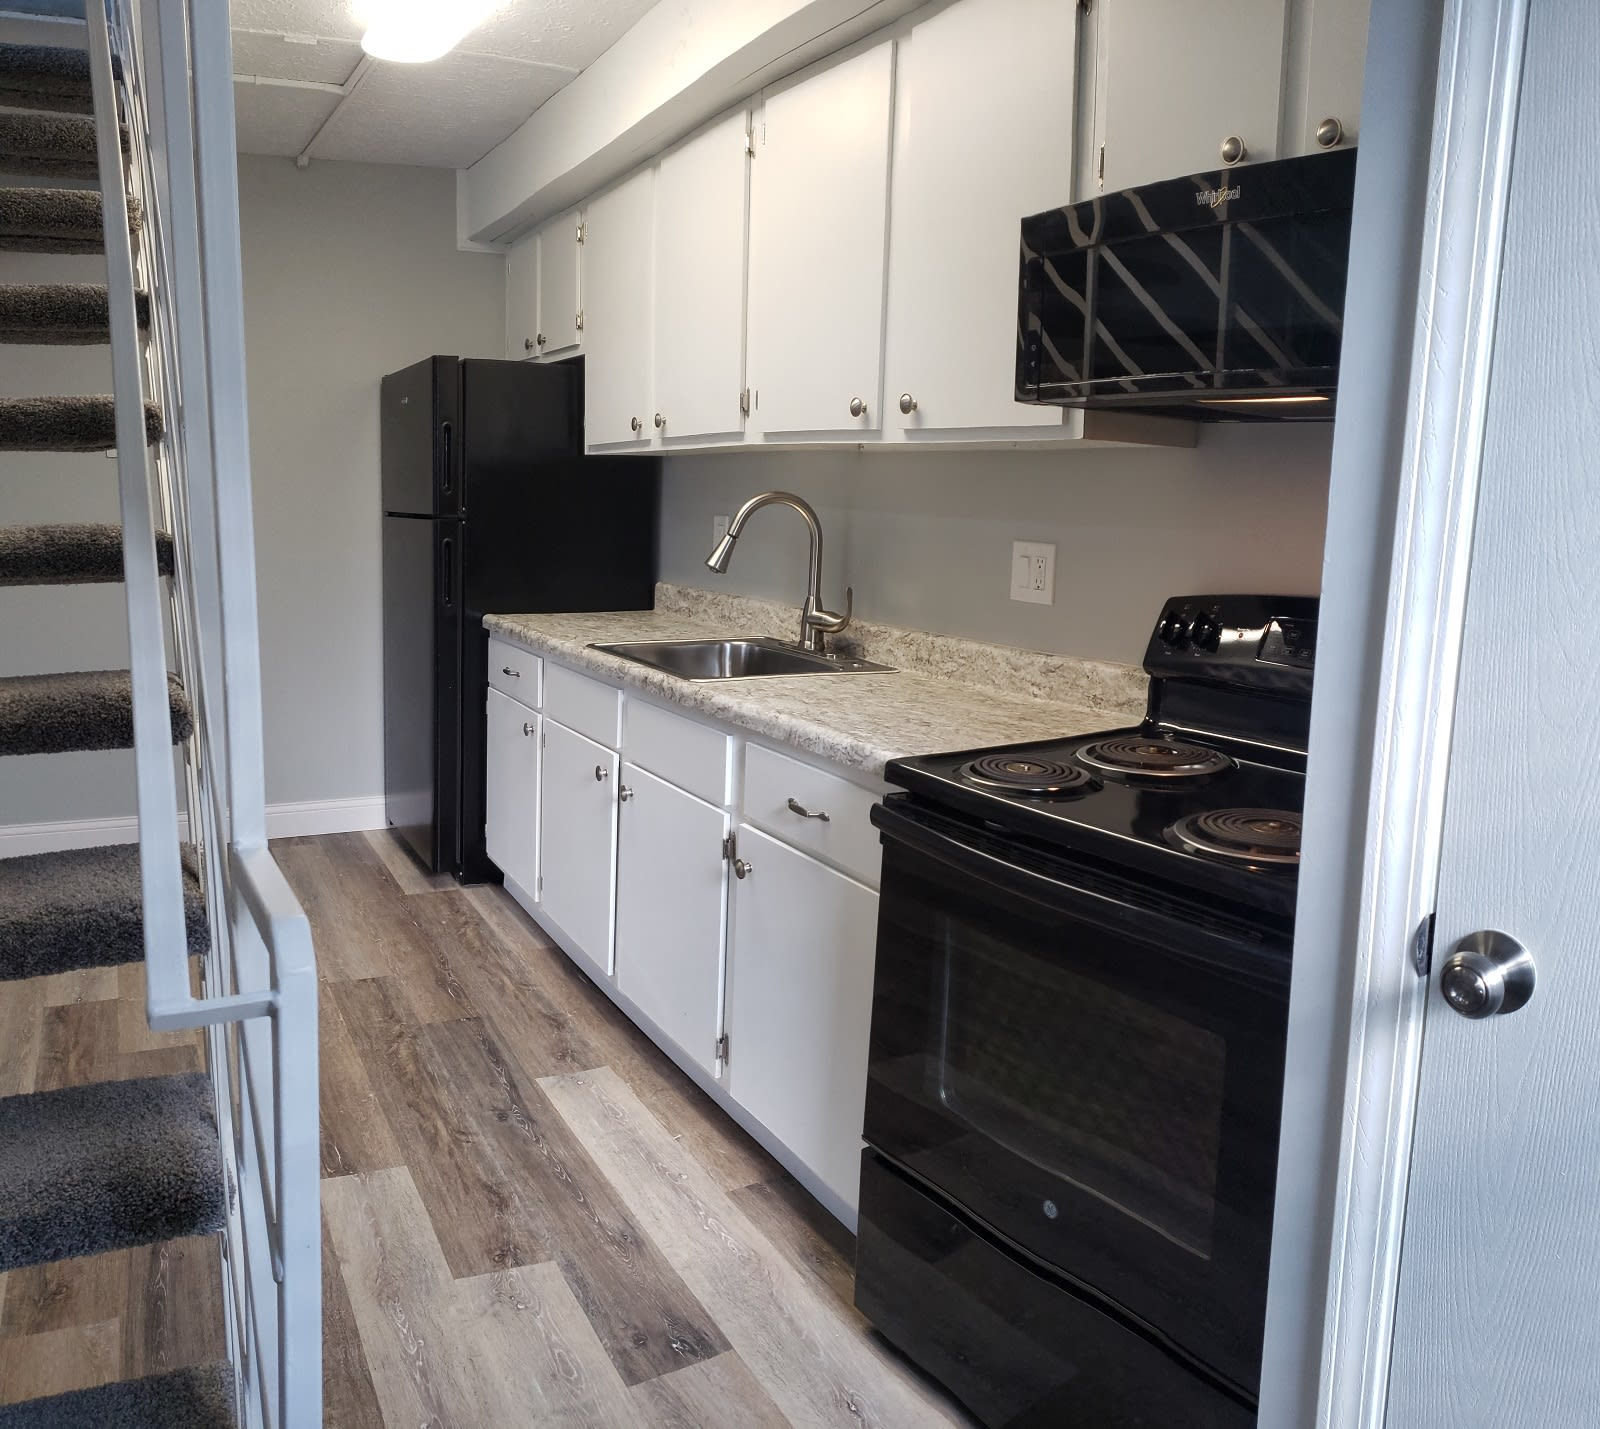 Model kitchen at Brittany Bay Apartments and Townhomes in Groveport, Ohio